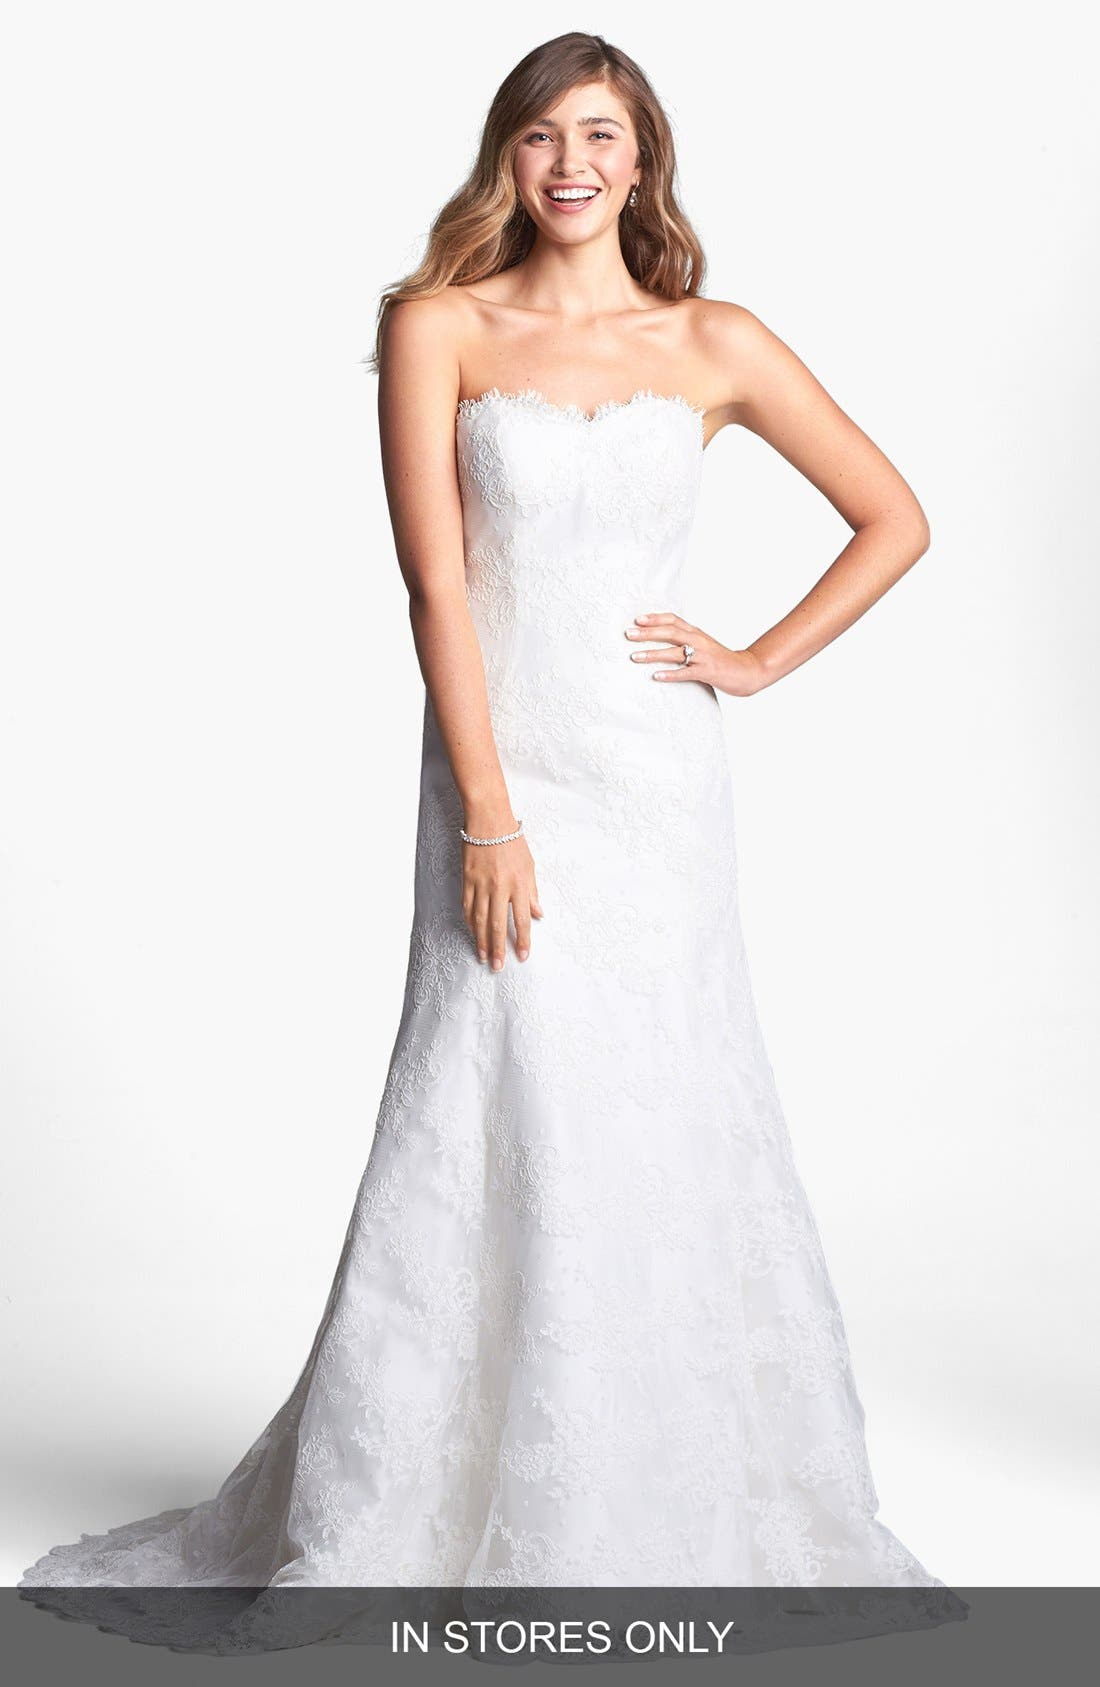 Main Image - Heidi Elnora 'Riley Grace' Lace Overlay Silk Dupioni Dress (In Stores Only)